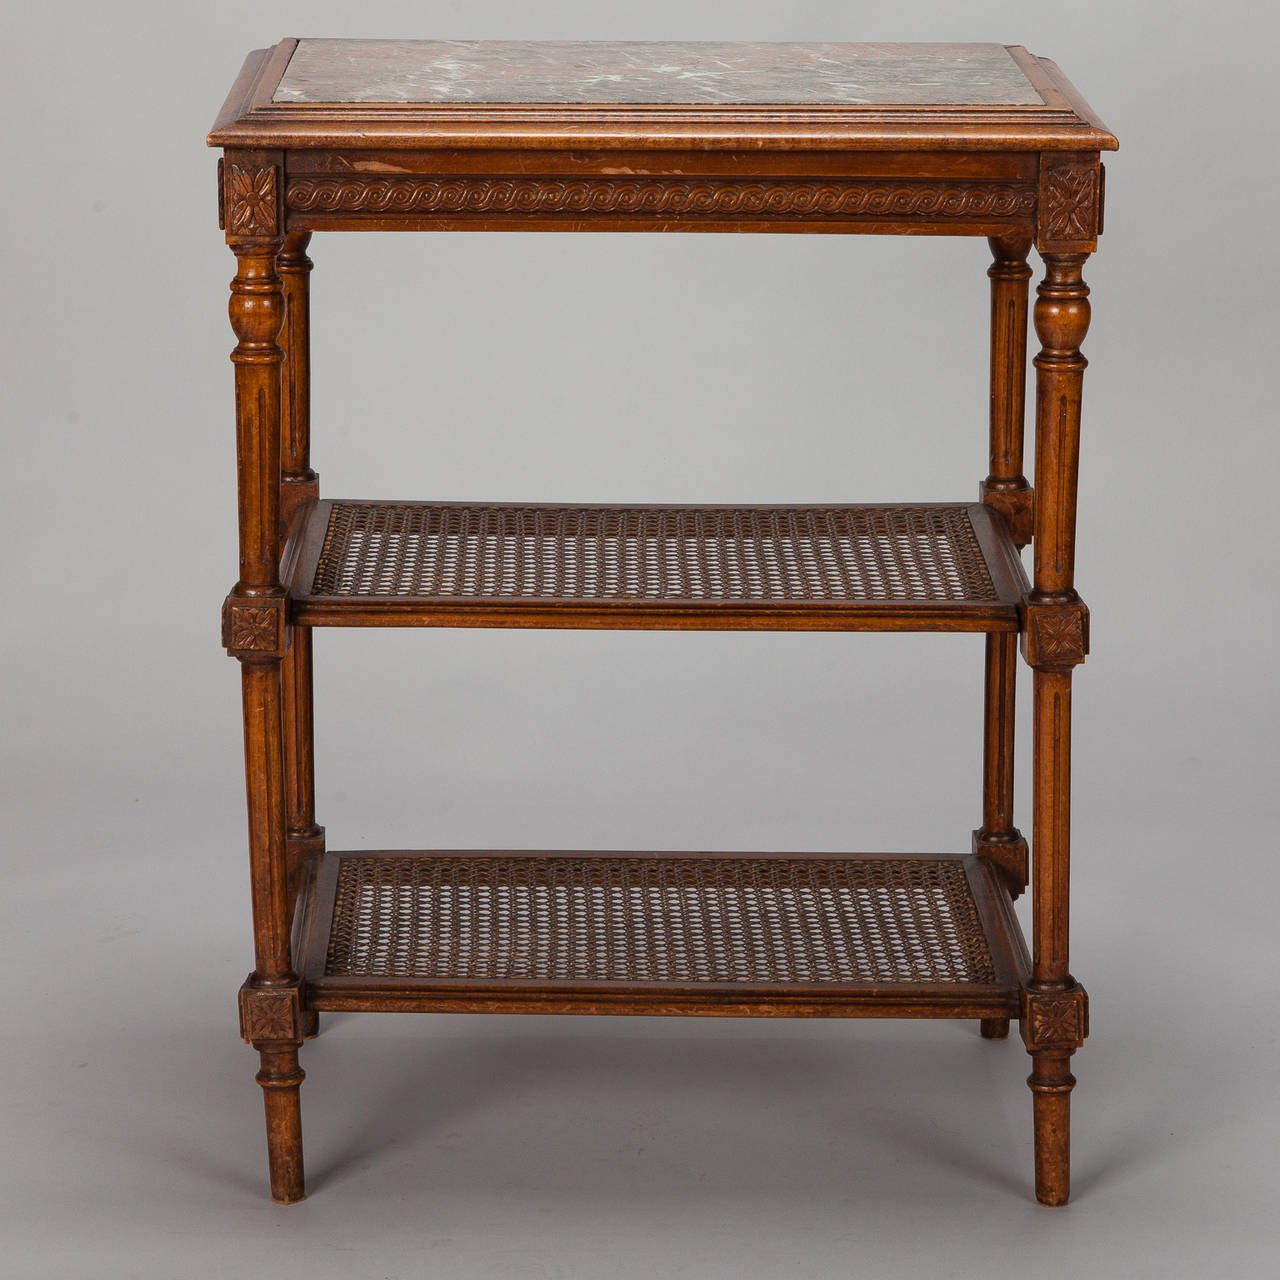 20th Century French Tiered Side Table with Marble Top and Caned Shelves For Sale